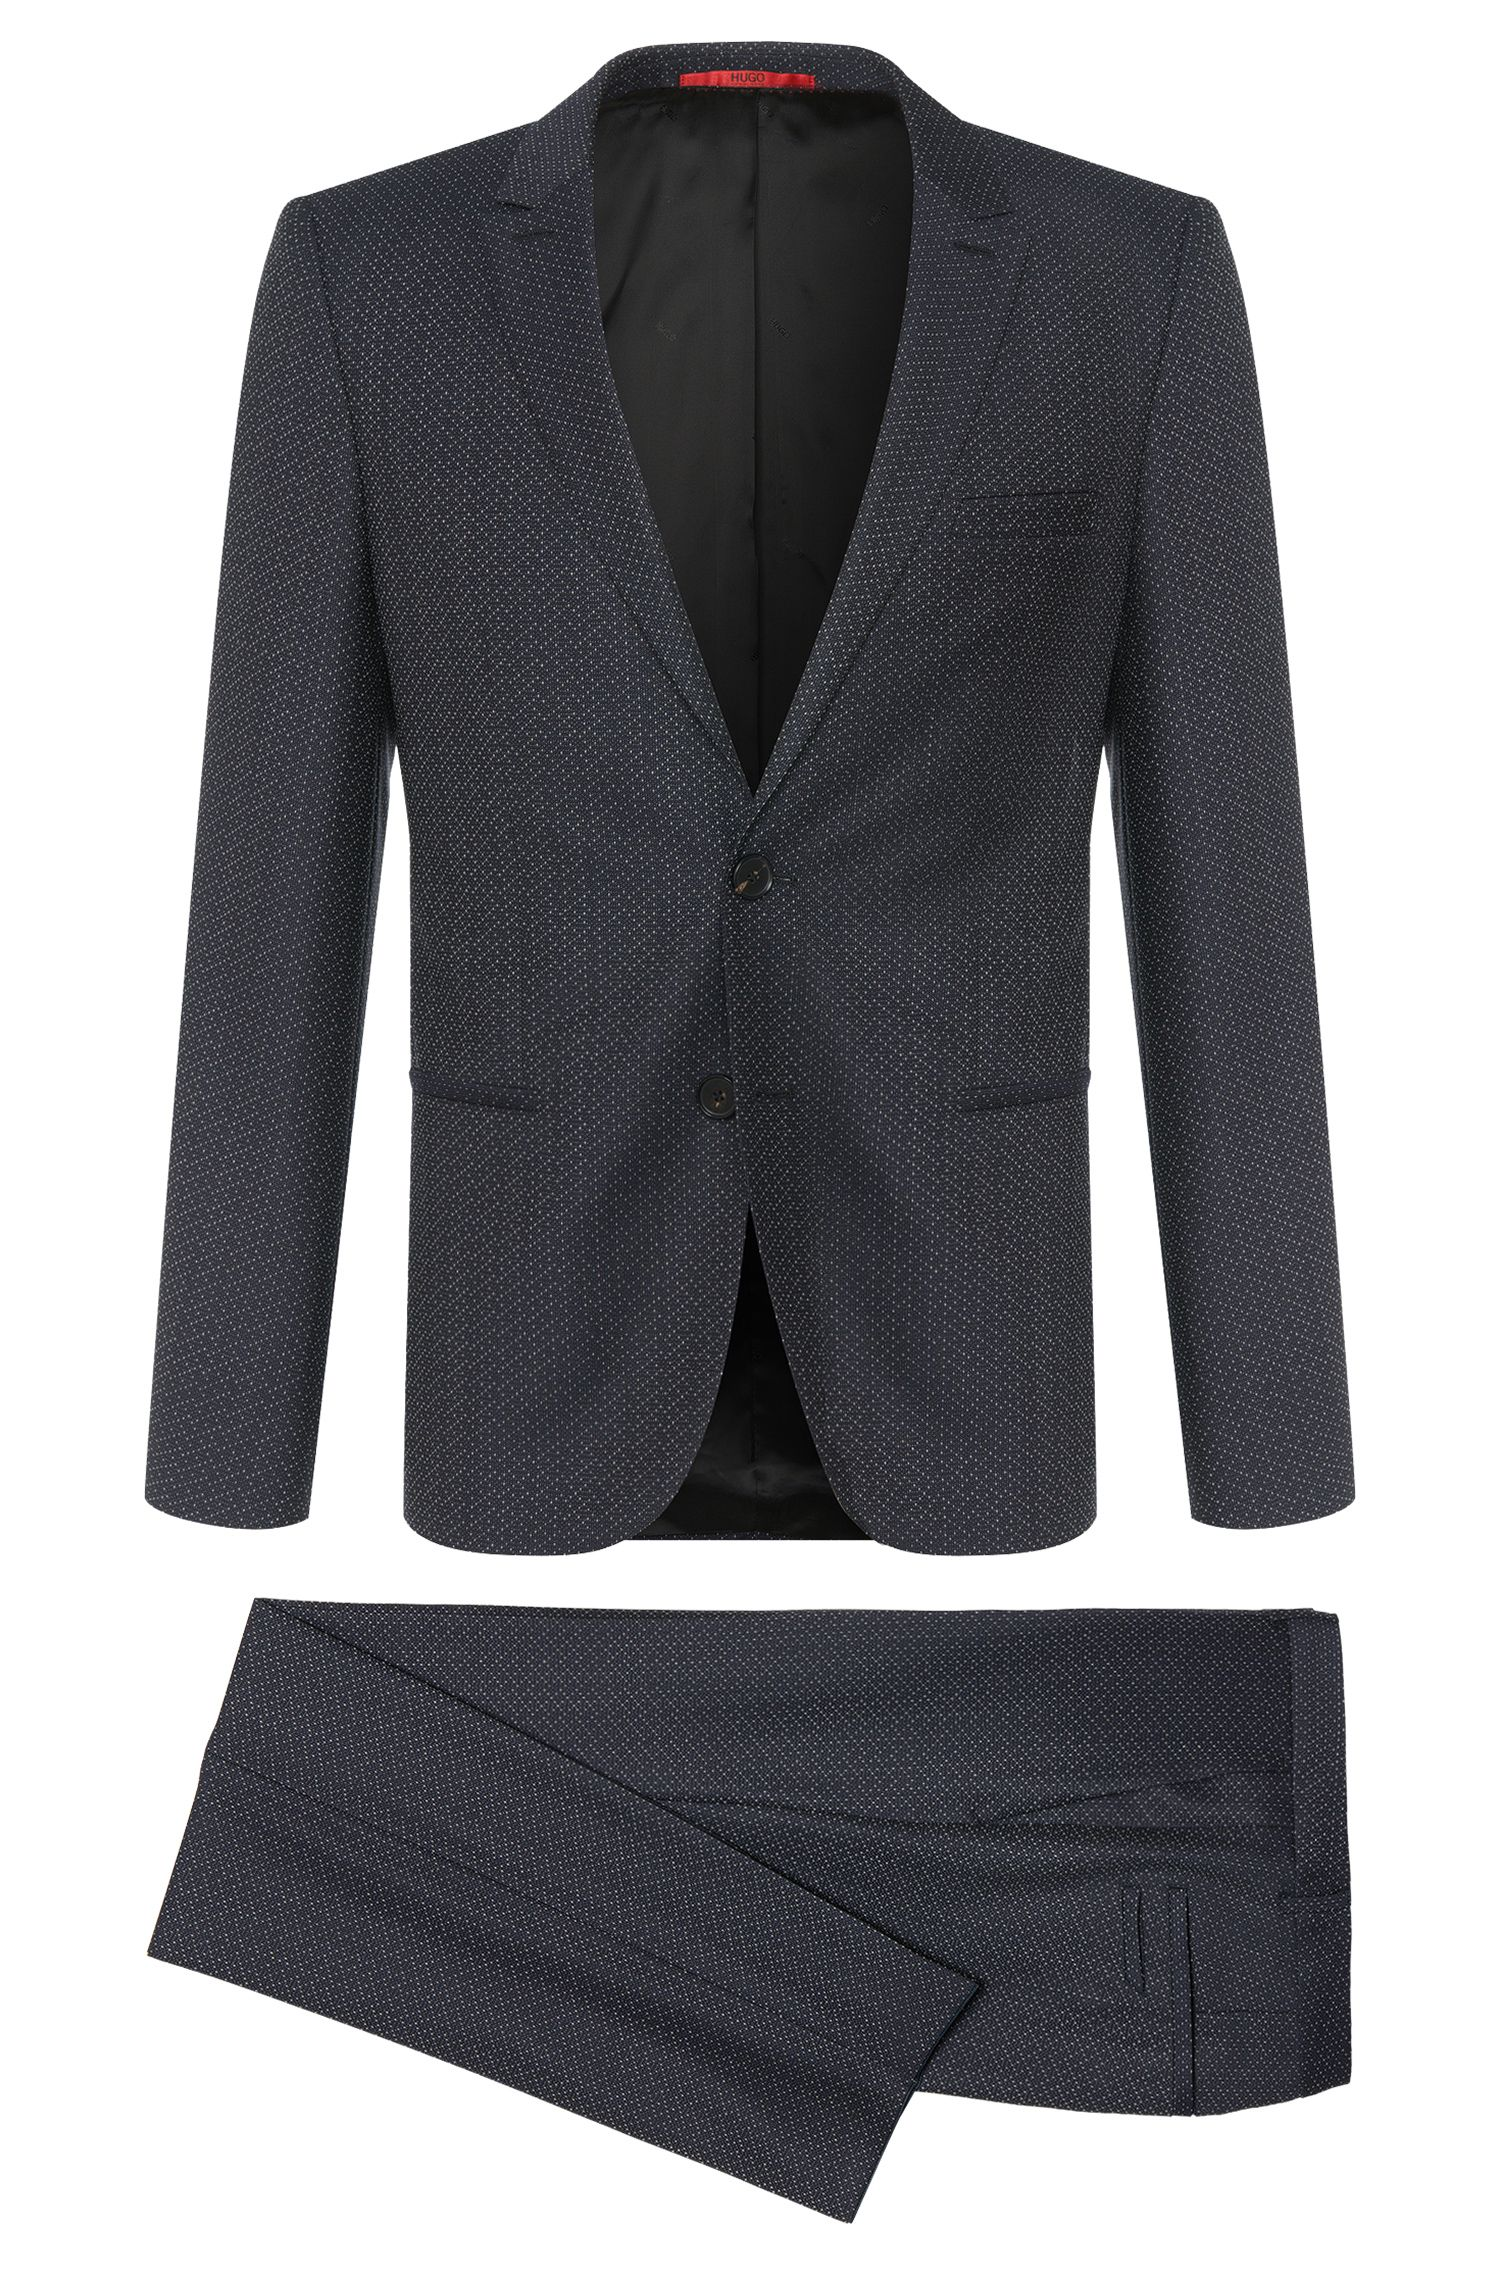 'Adan/Hallins' | Slim Fit, Super 100 Virgin Wool Suit